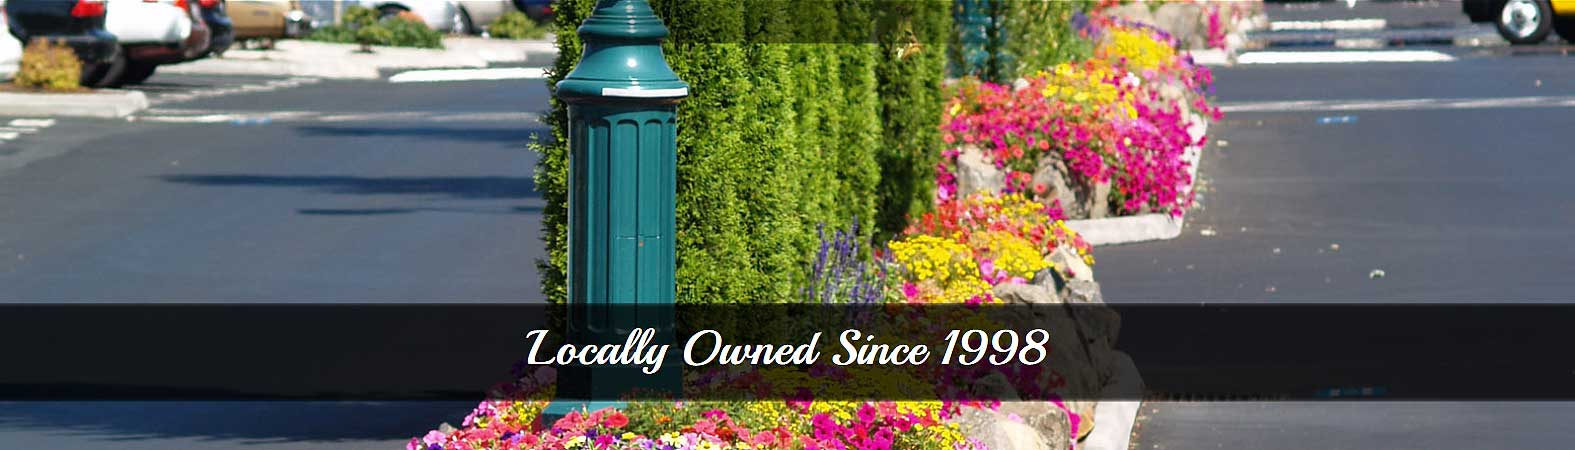 Locally Owned Since 1998